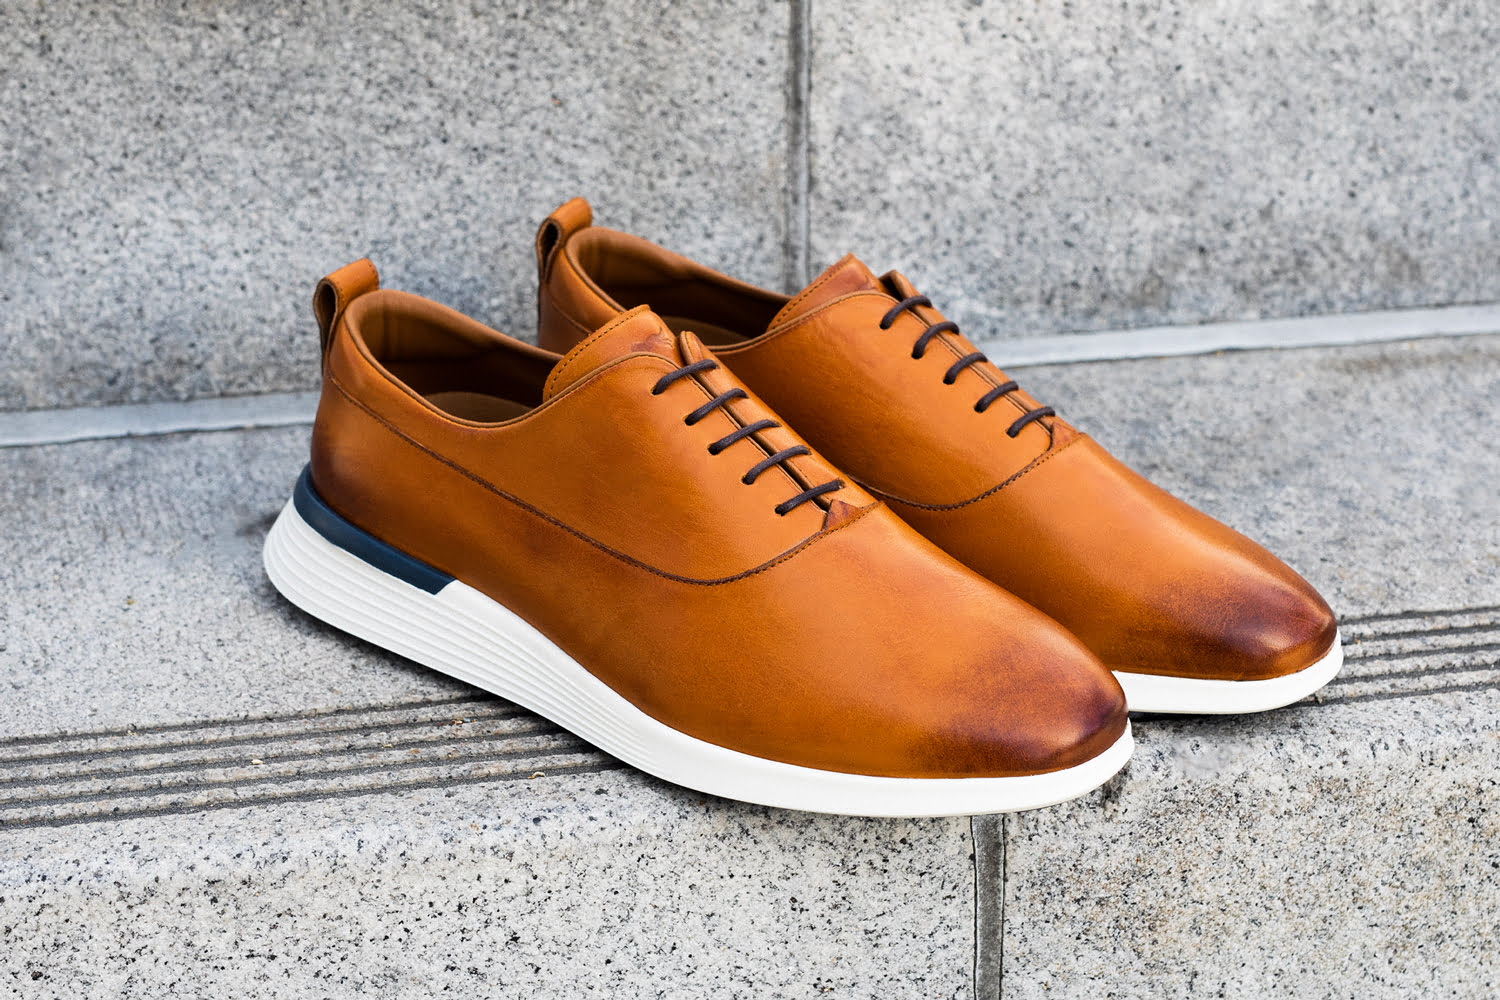 Wolf & Shepherd Takes on 'Business Casual' With All-New Dress Shoe: The Crossover